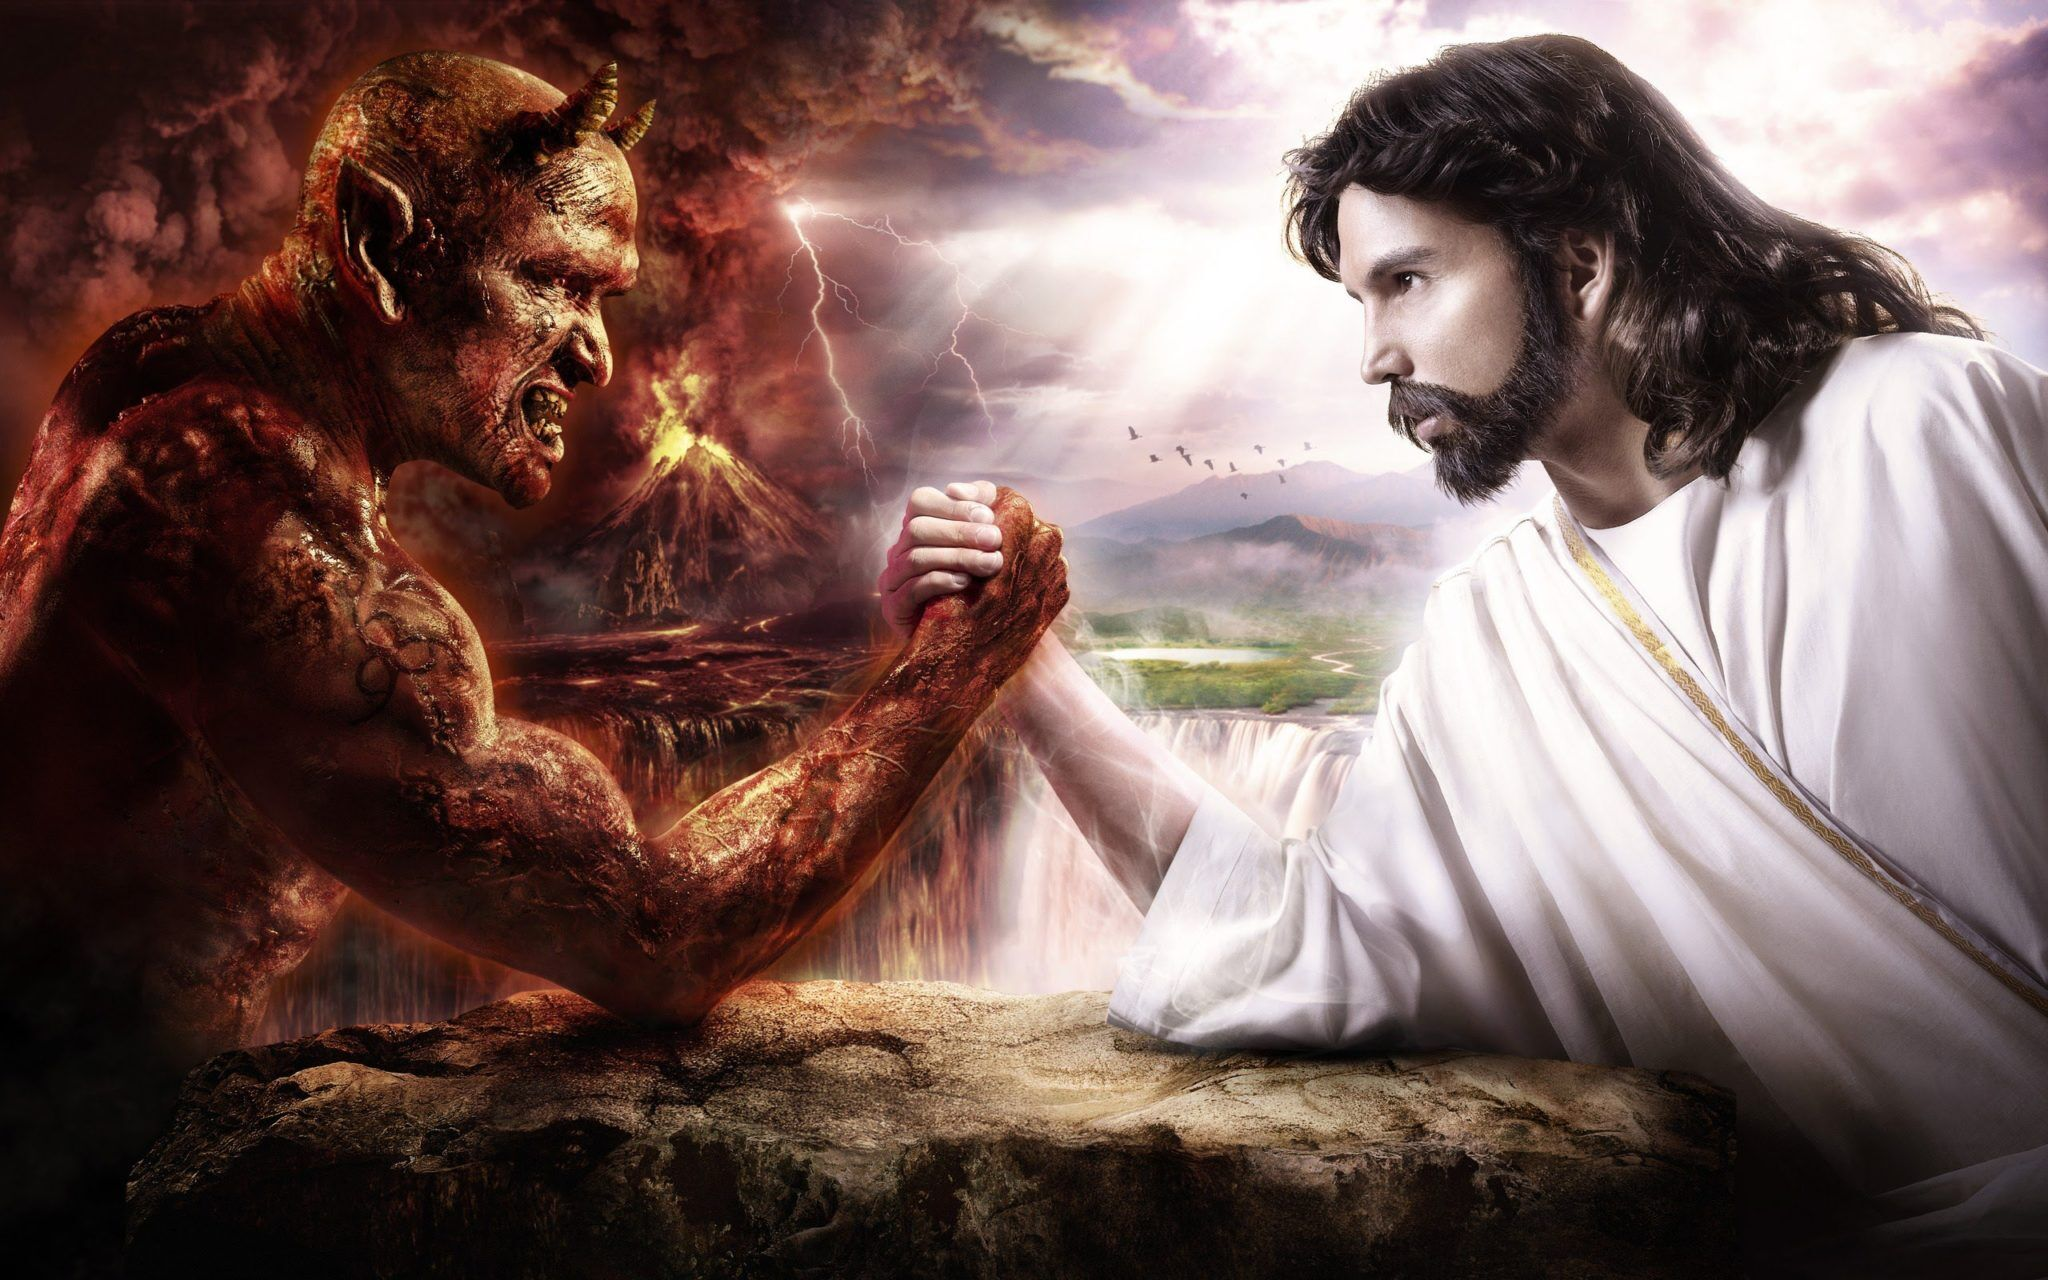 Why does Satan get a bad rap when God has done the crimes?